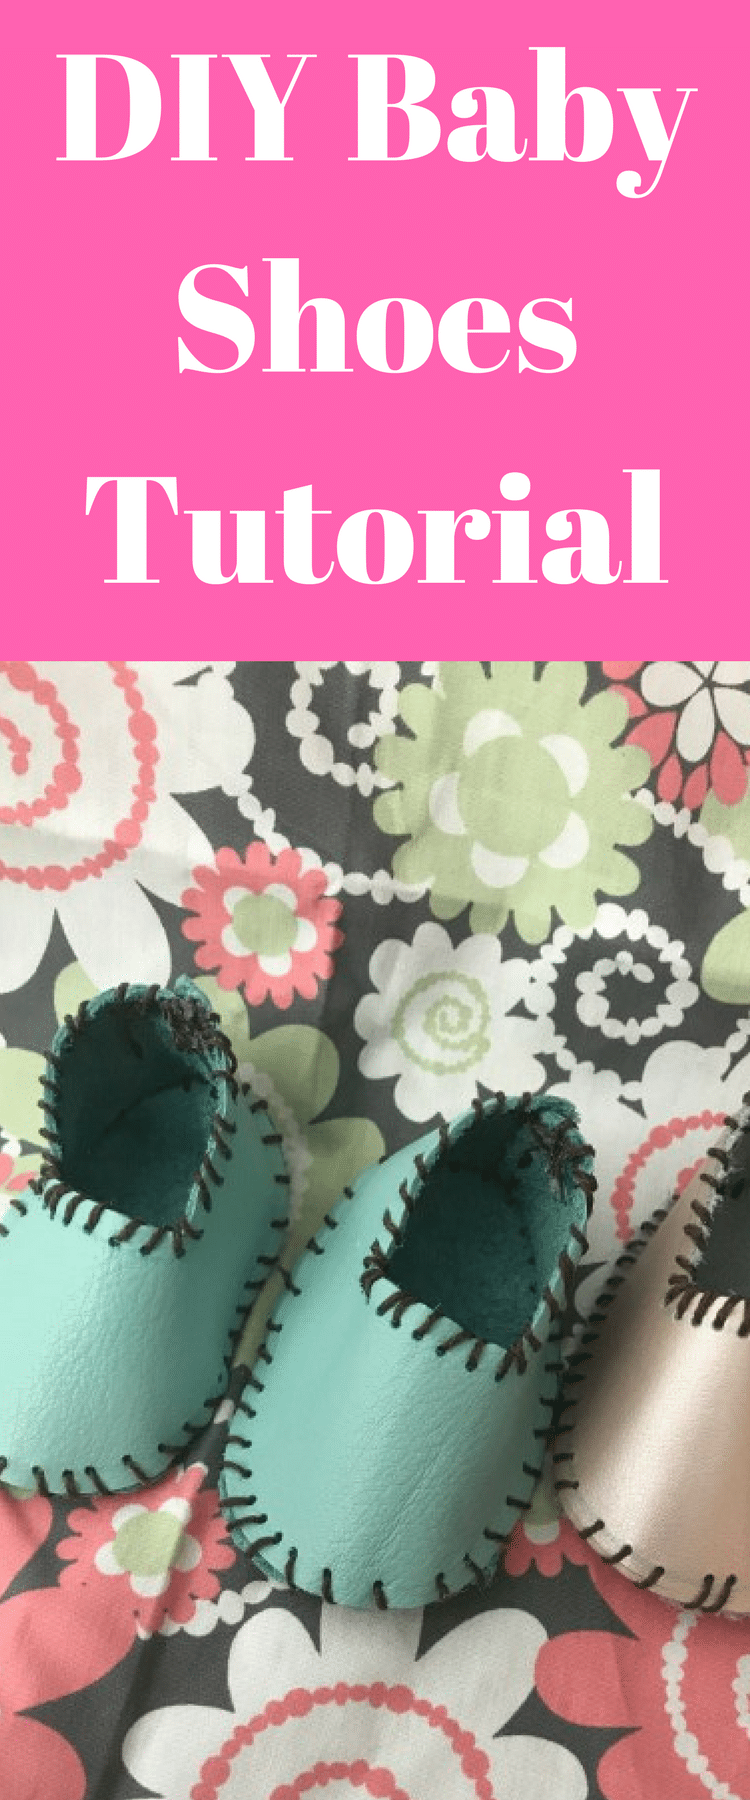 DIY baby shoes / baby leather shoes / leather baby shoes / baby moccasins / cricut sewing / cricut crafts / cricut tutorial